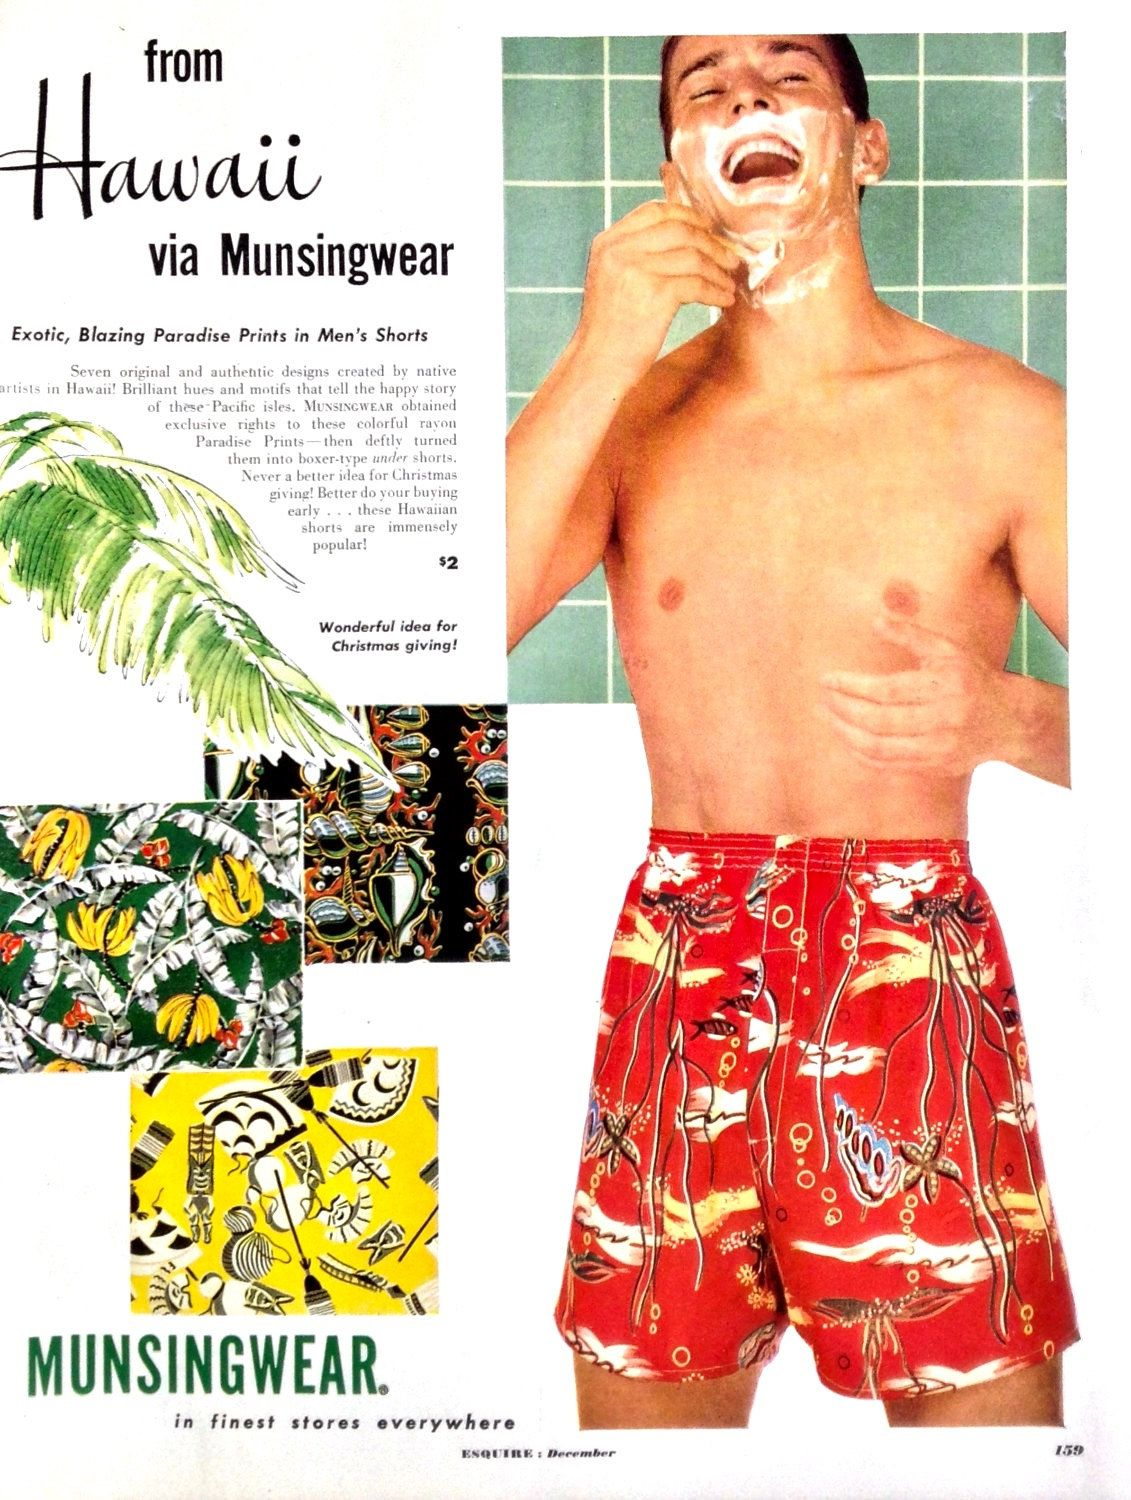 d53d29d5f0 Boxer Shorts, Vintage Print Ad, Munsingwear Men's Shorts, Swim Trunks,  Hawaii,